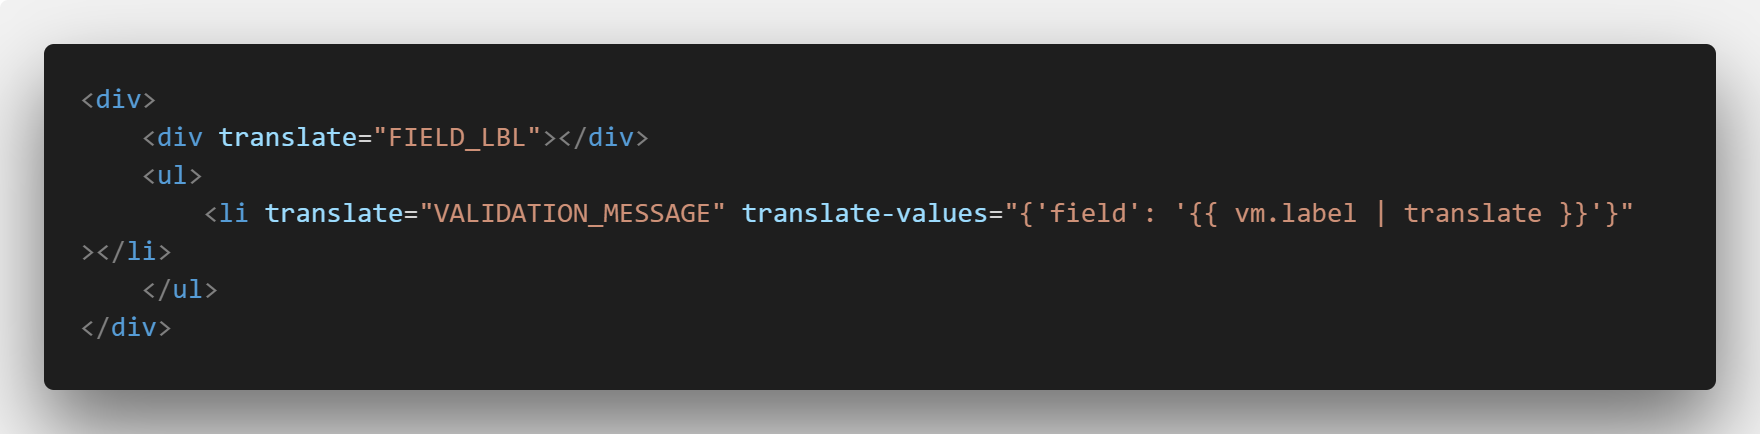 A view that uses angular-translate to plug translated values into another translated string